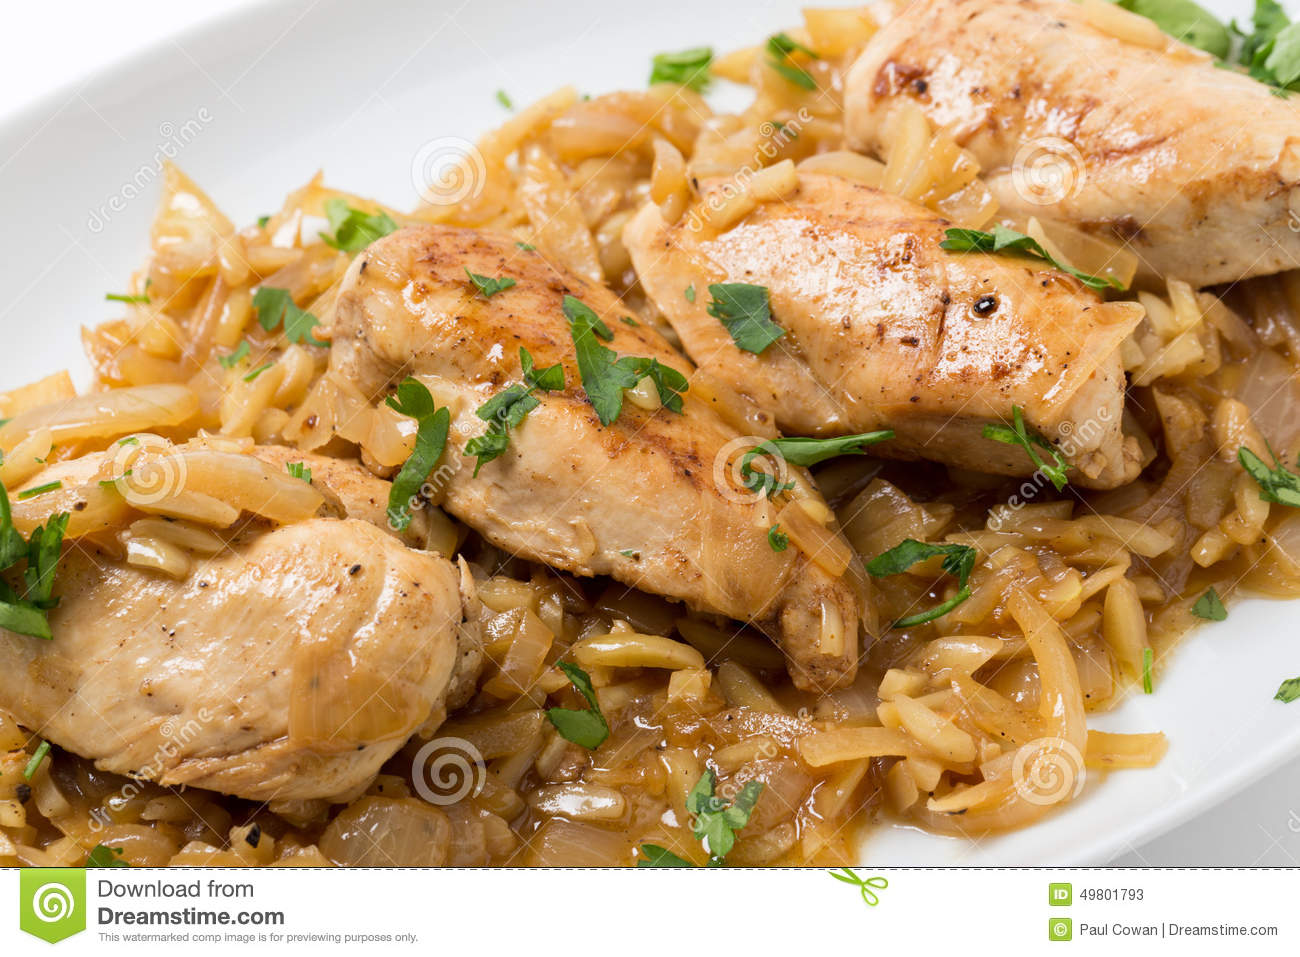 Chicken In Almond Sauce Closeup Stock Photo - Image: 49801793